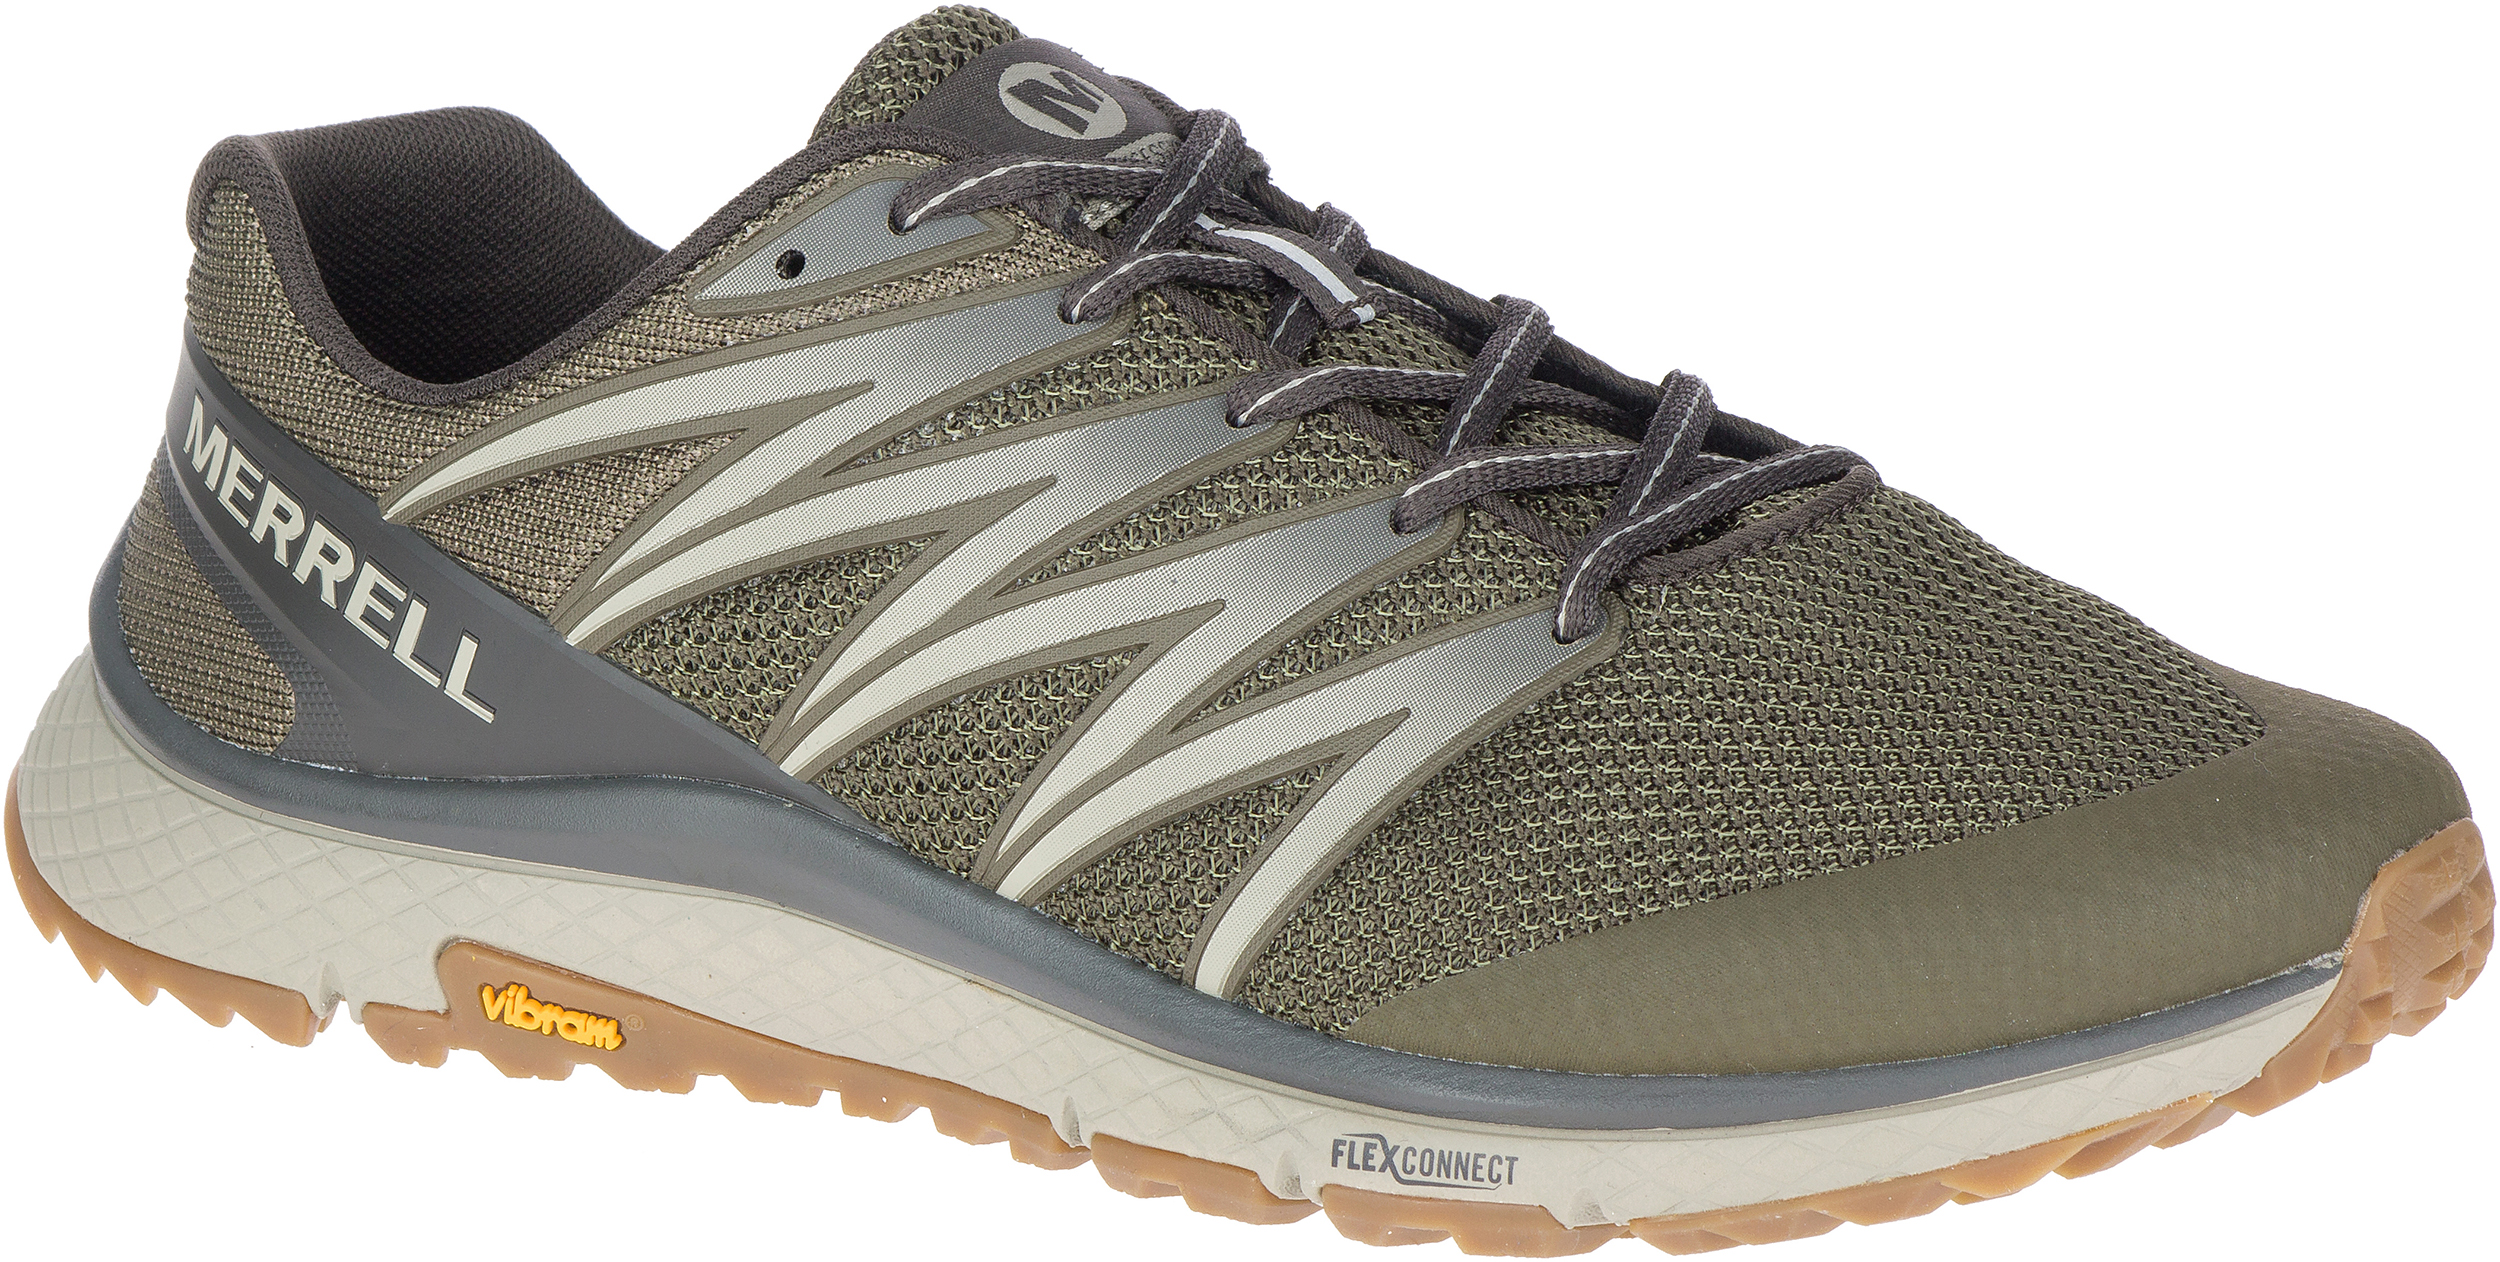 d014492374801 Merrell Bare Access XTR Trail Running Shoes - Men's